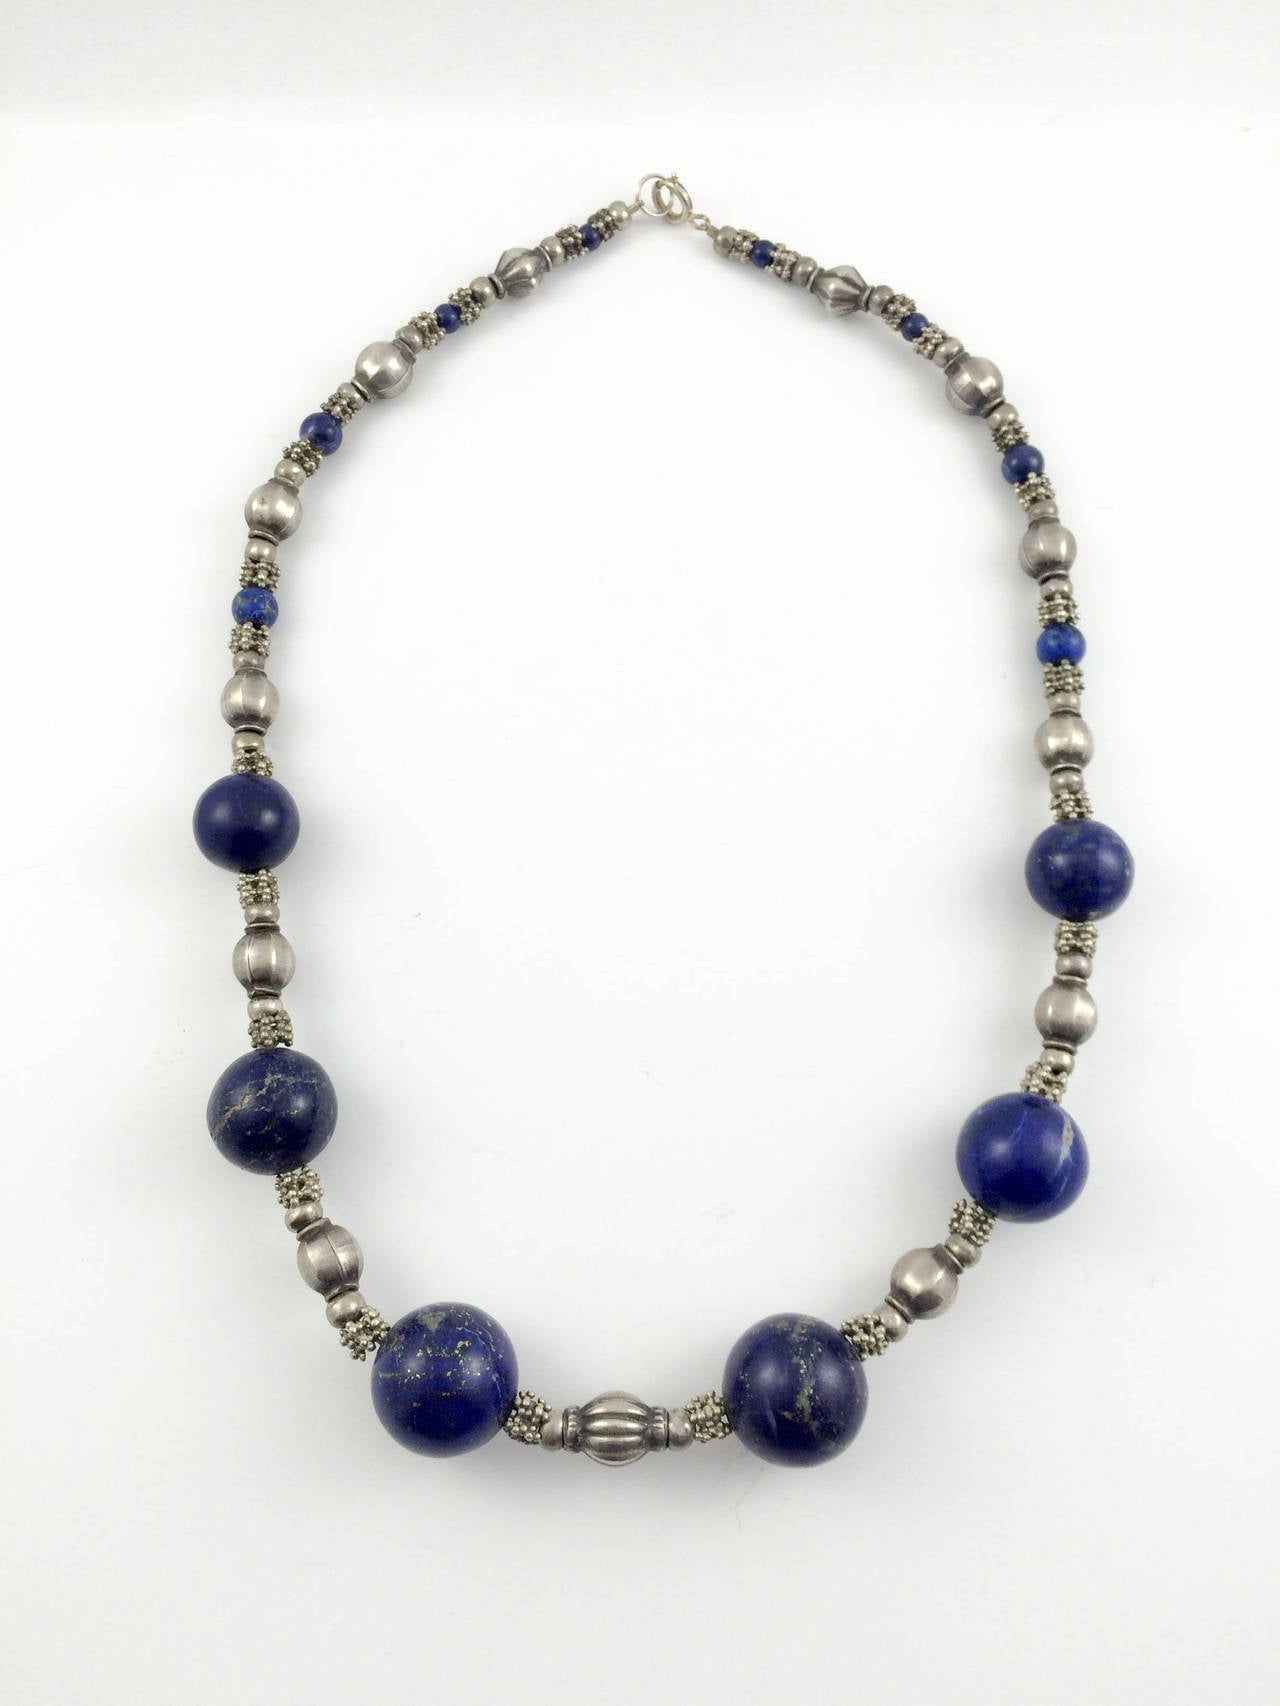 Silver and Lapis Lazuli Necklace - 1970s 2